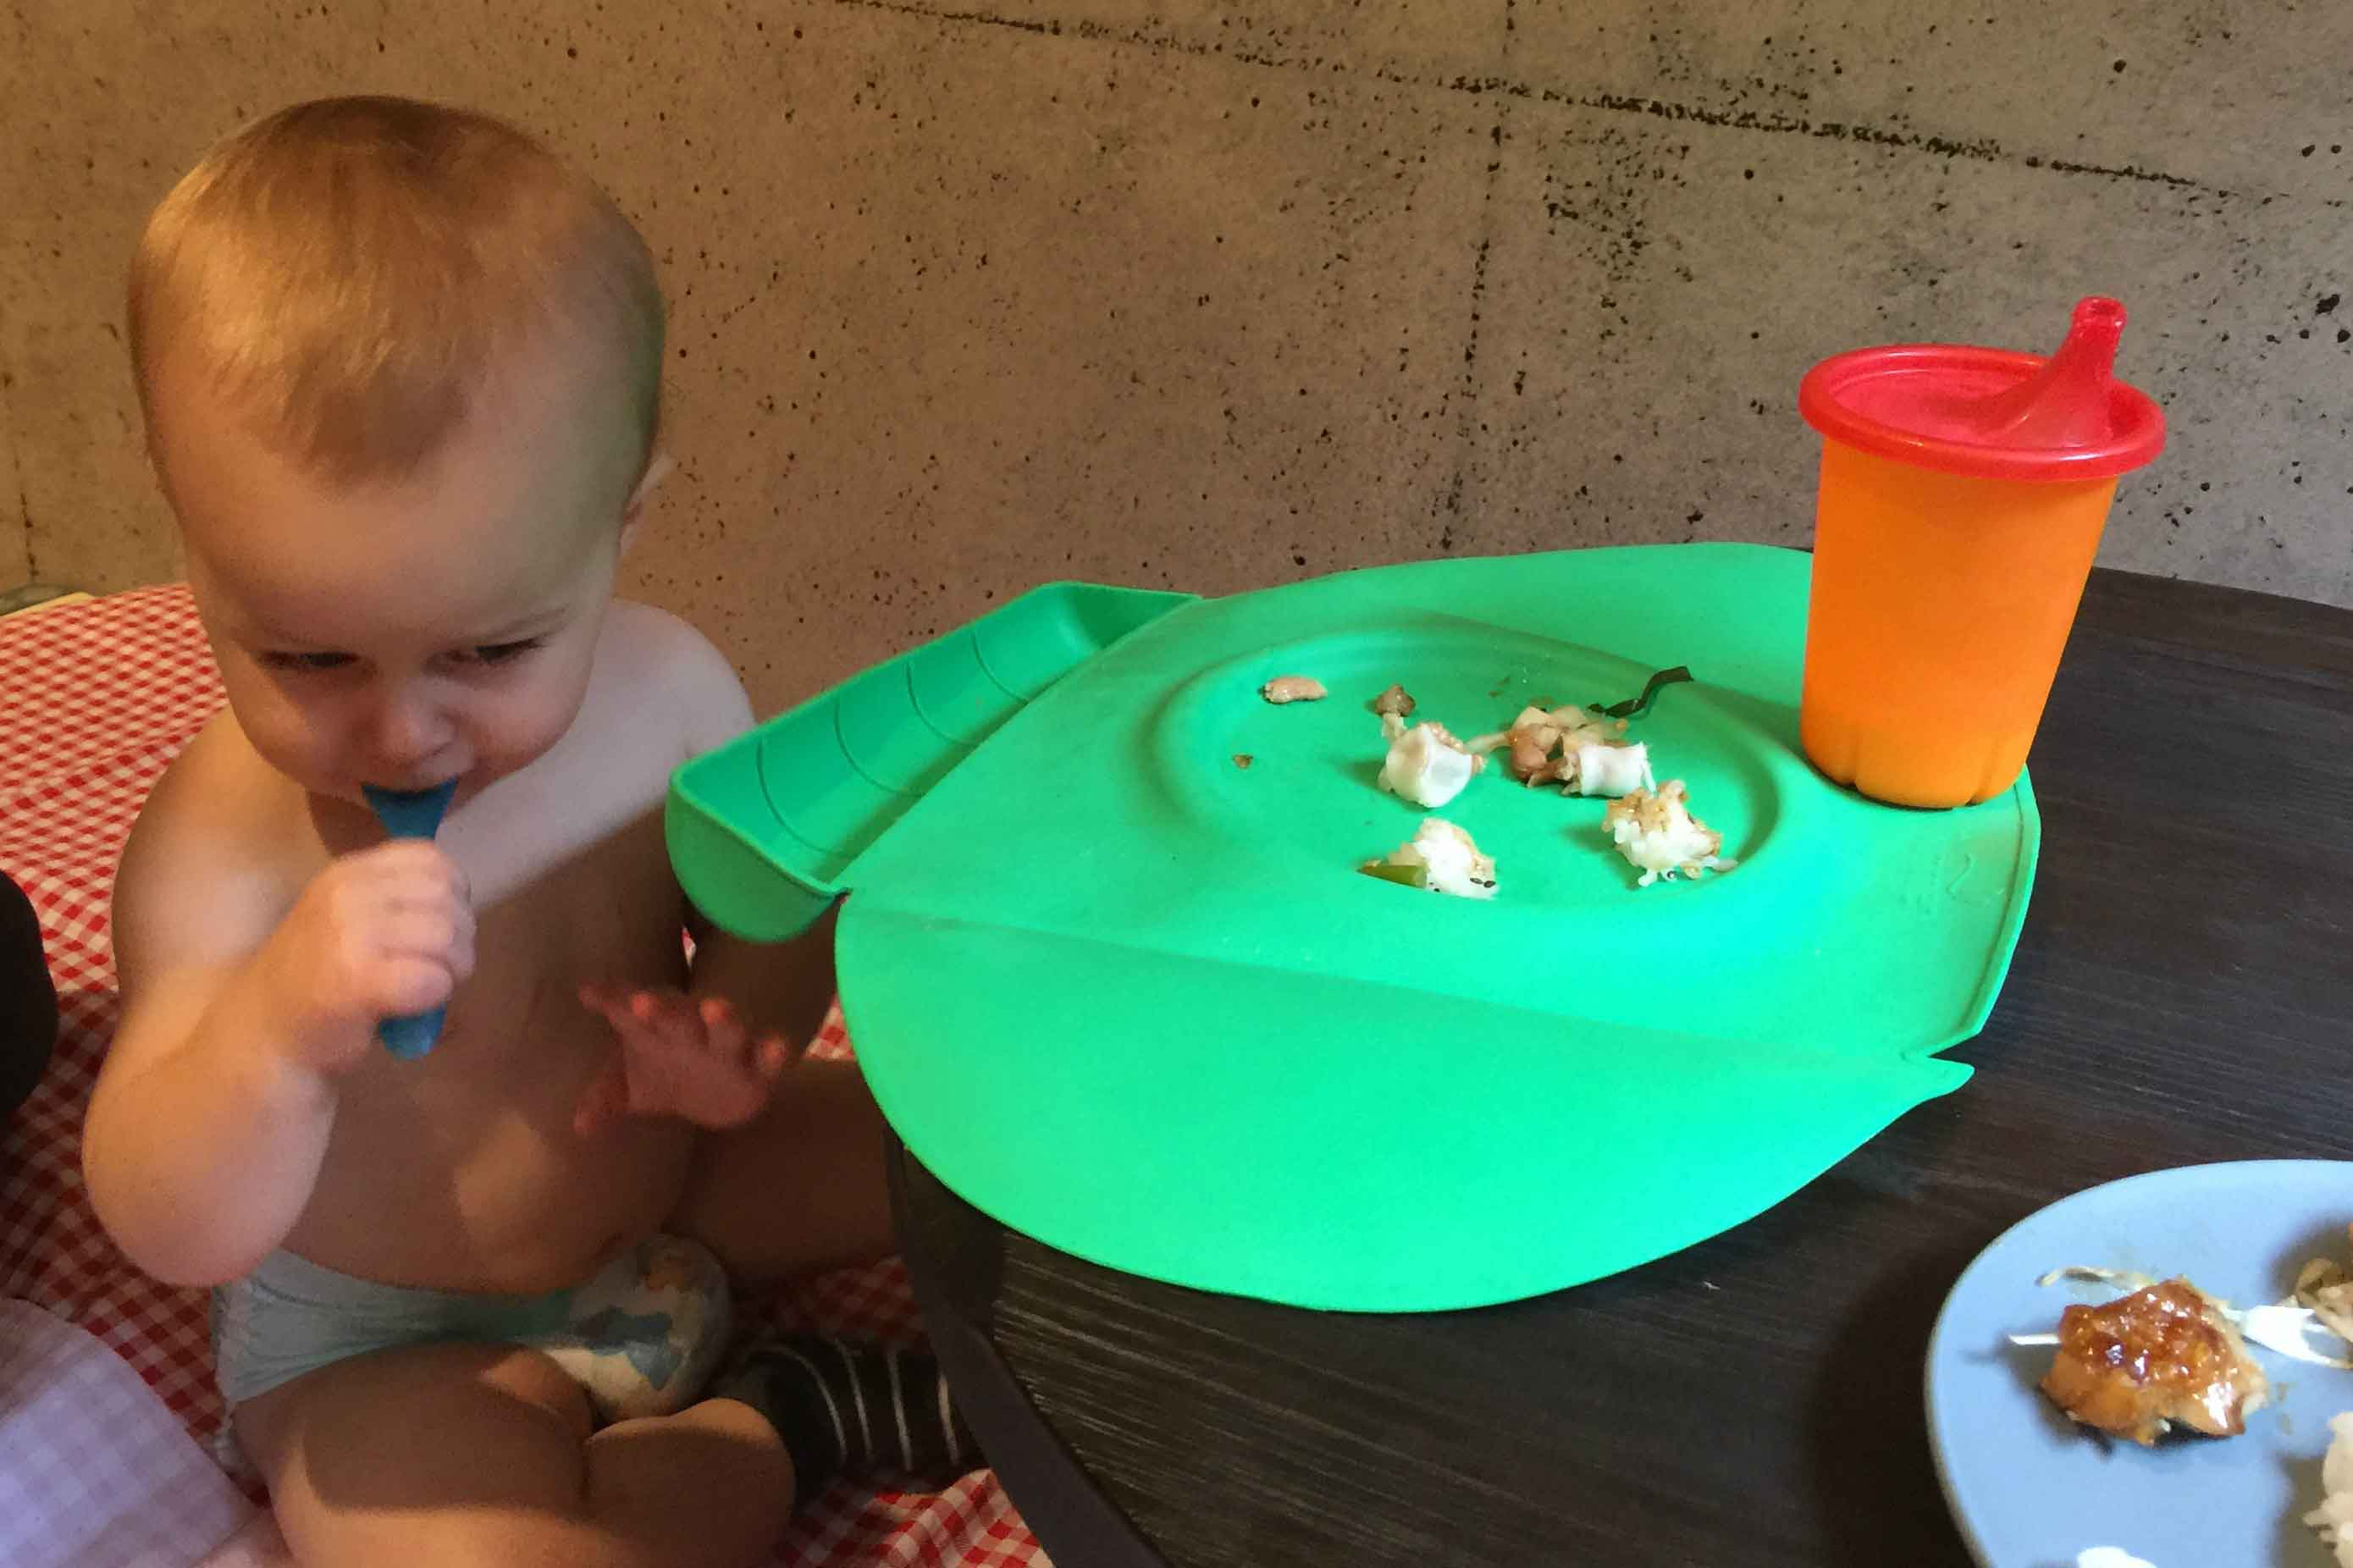 Baby-Can-Travel---Travel-Highchair-Comparison---Japan-Apartment-Baby-Eating